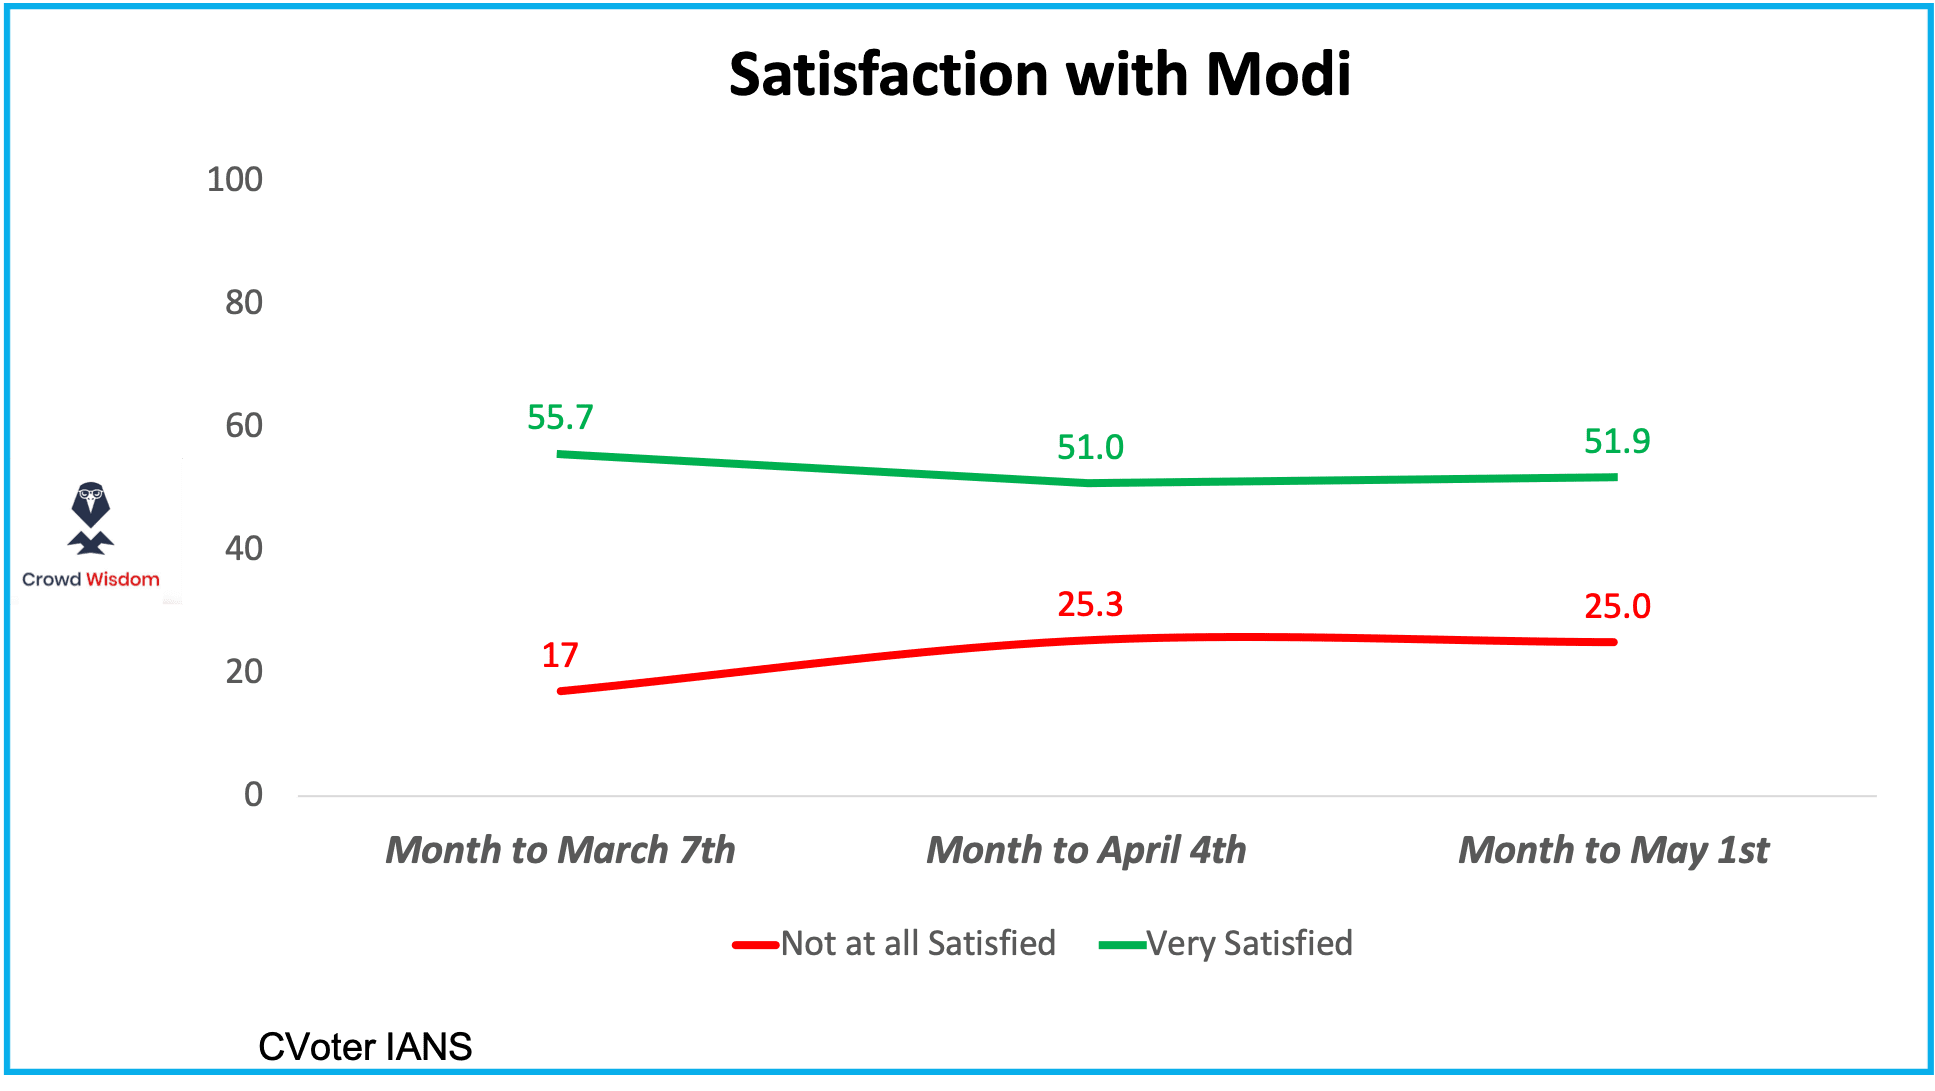 Prediction Nugget: Modi Satisfaction remains steady during election time